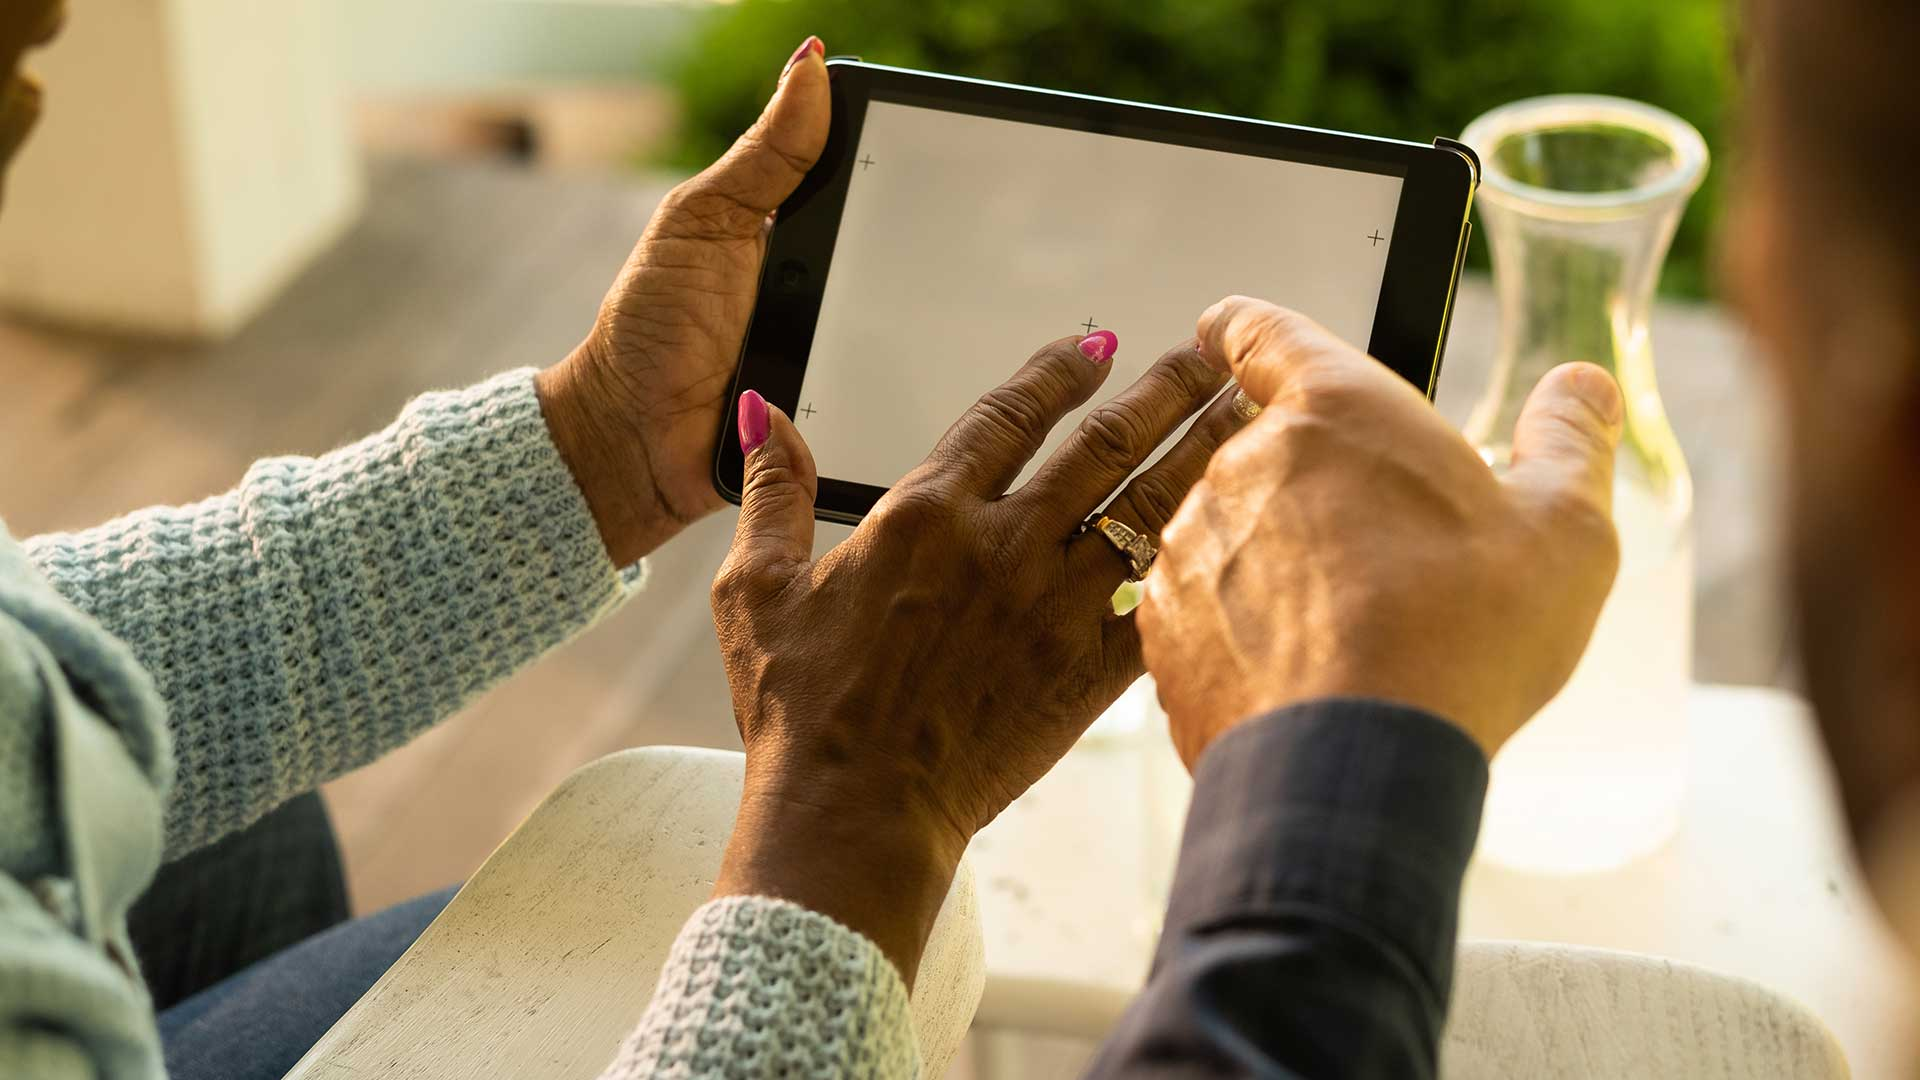 Brand_Image_Still_Porch_CU-Man-Woman-hands-on-Tablet-DSF1710_JPEG_9MB